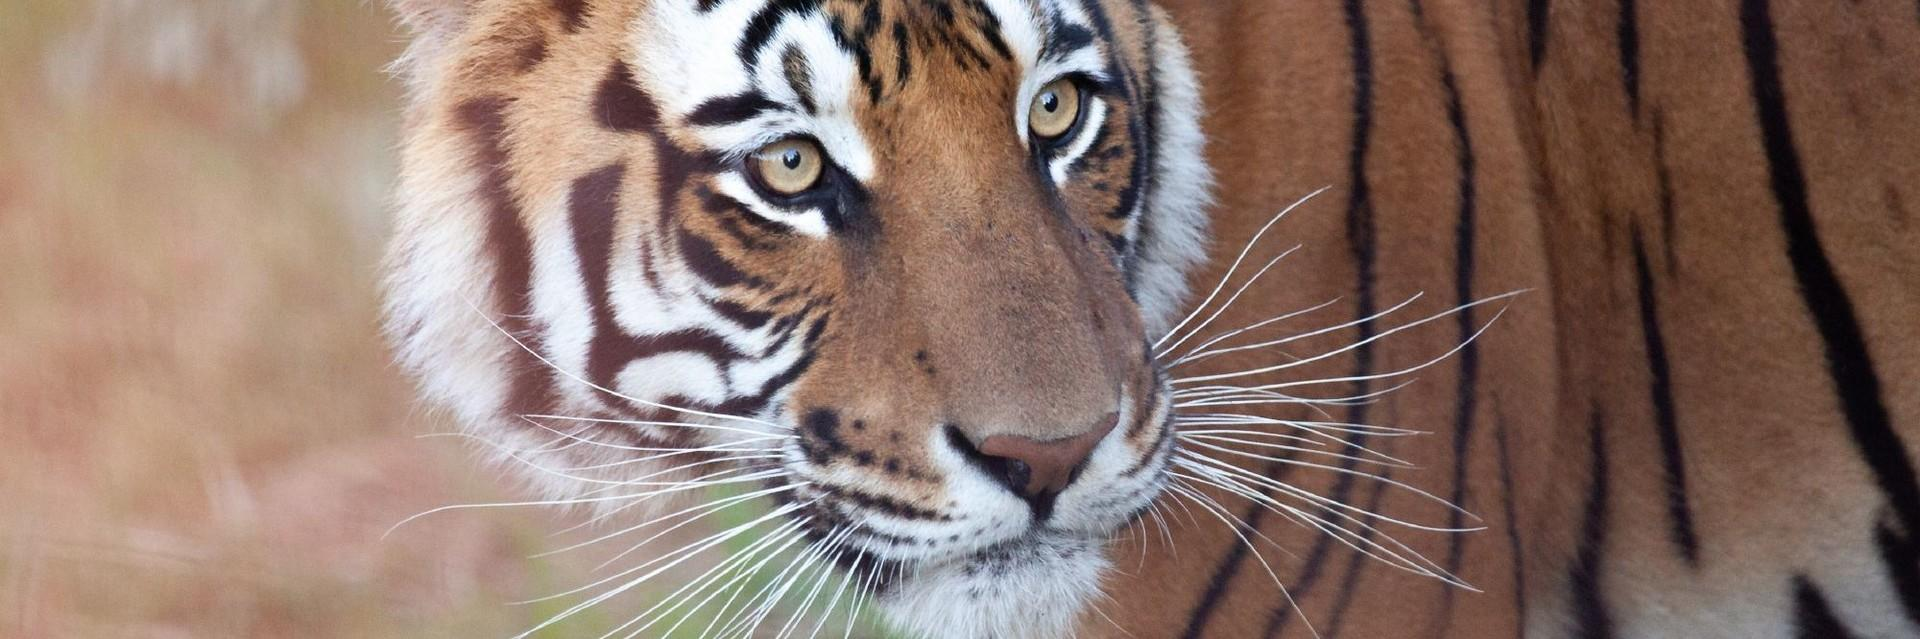 Tiger rescued from Bloemfontein Zoo